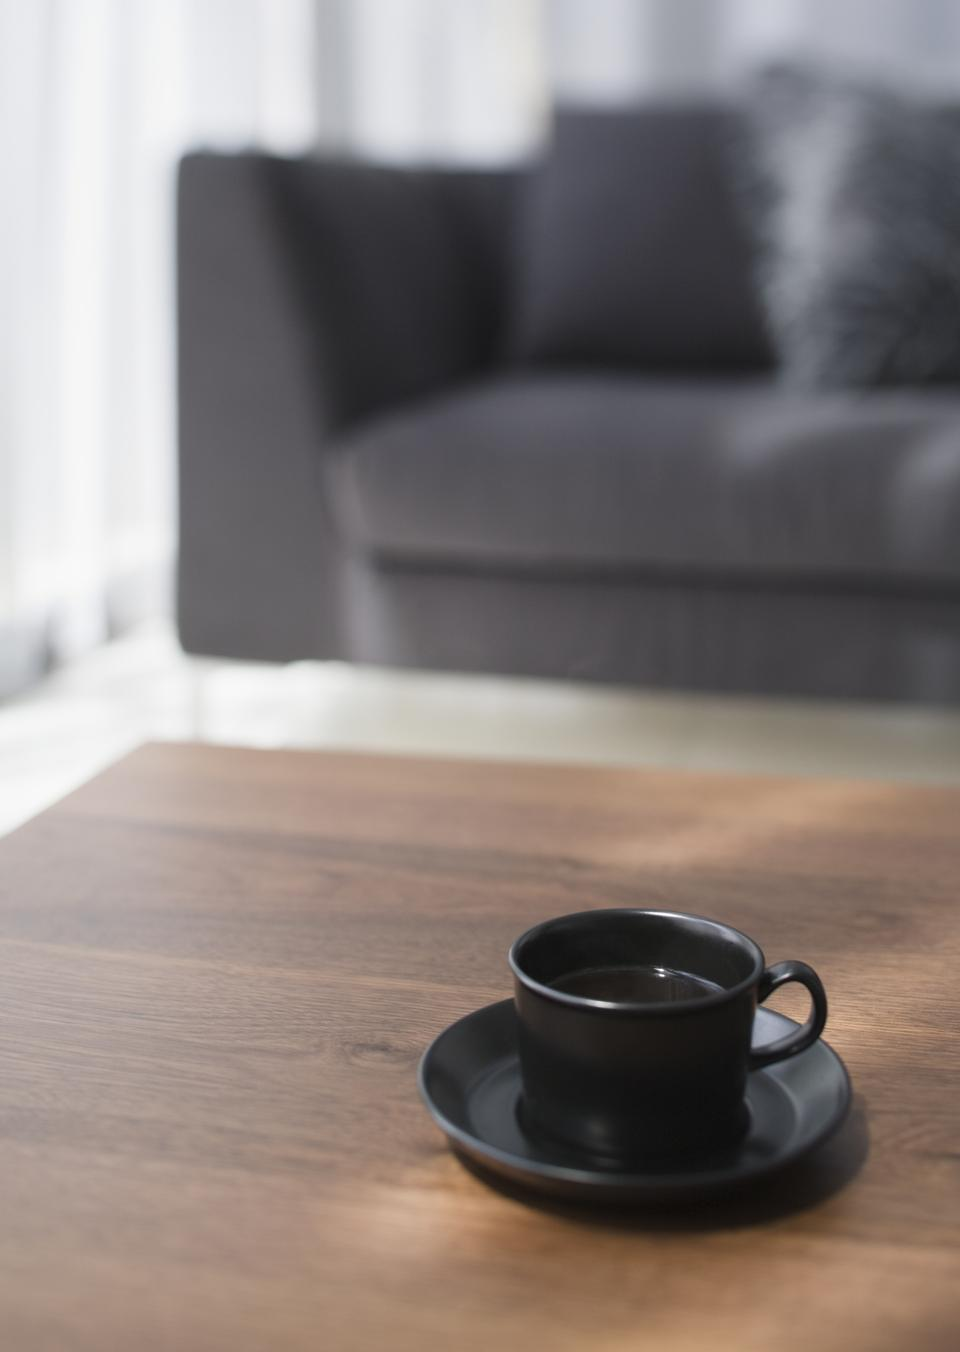 Black cup of coffee on table in living room